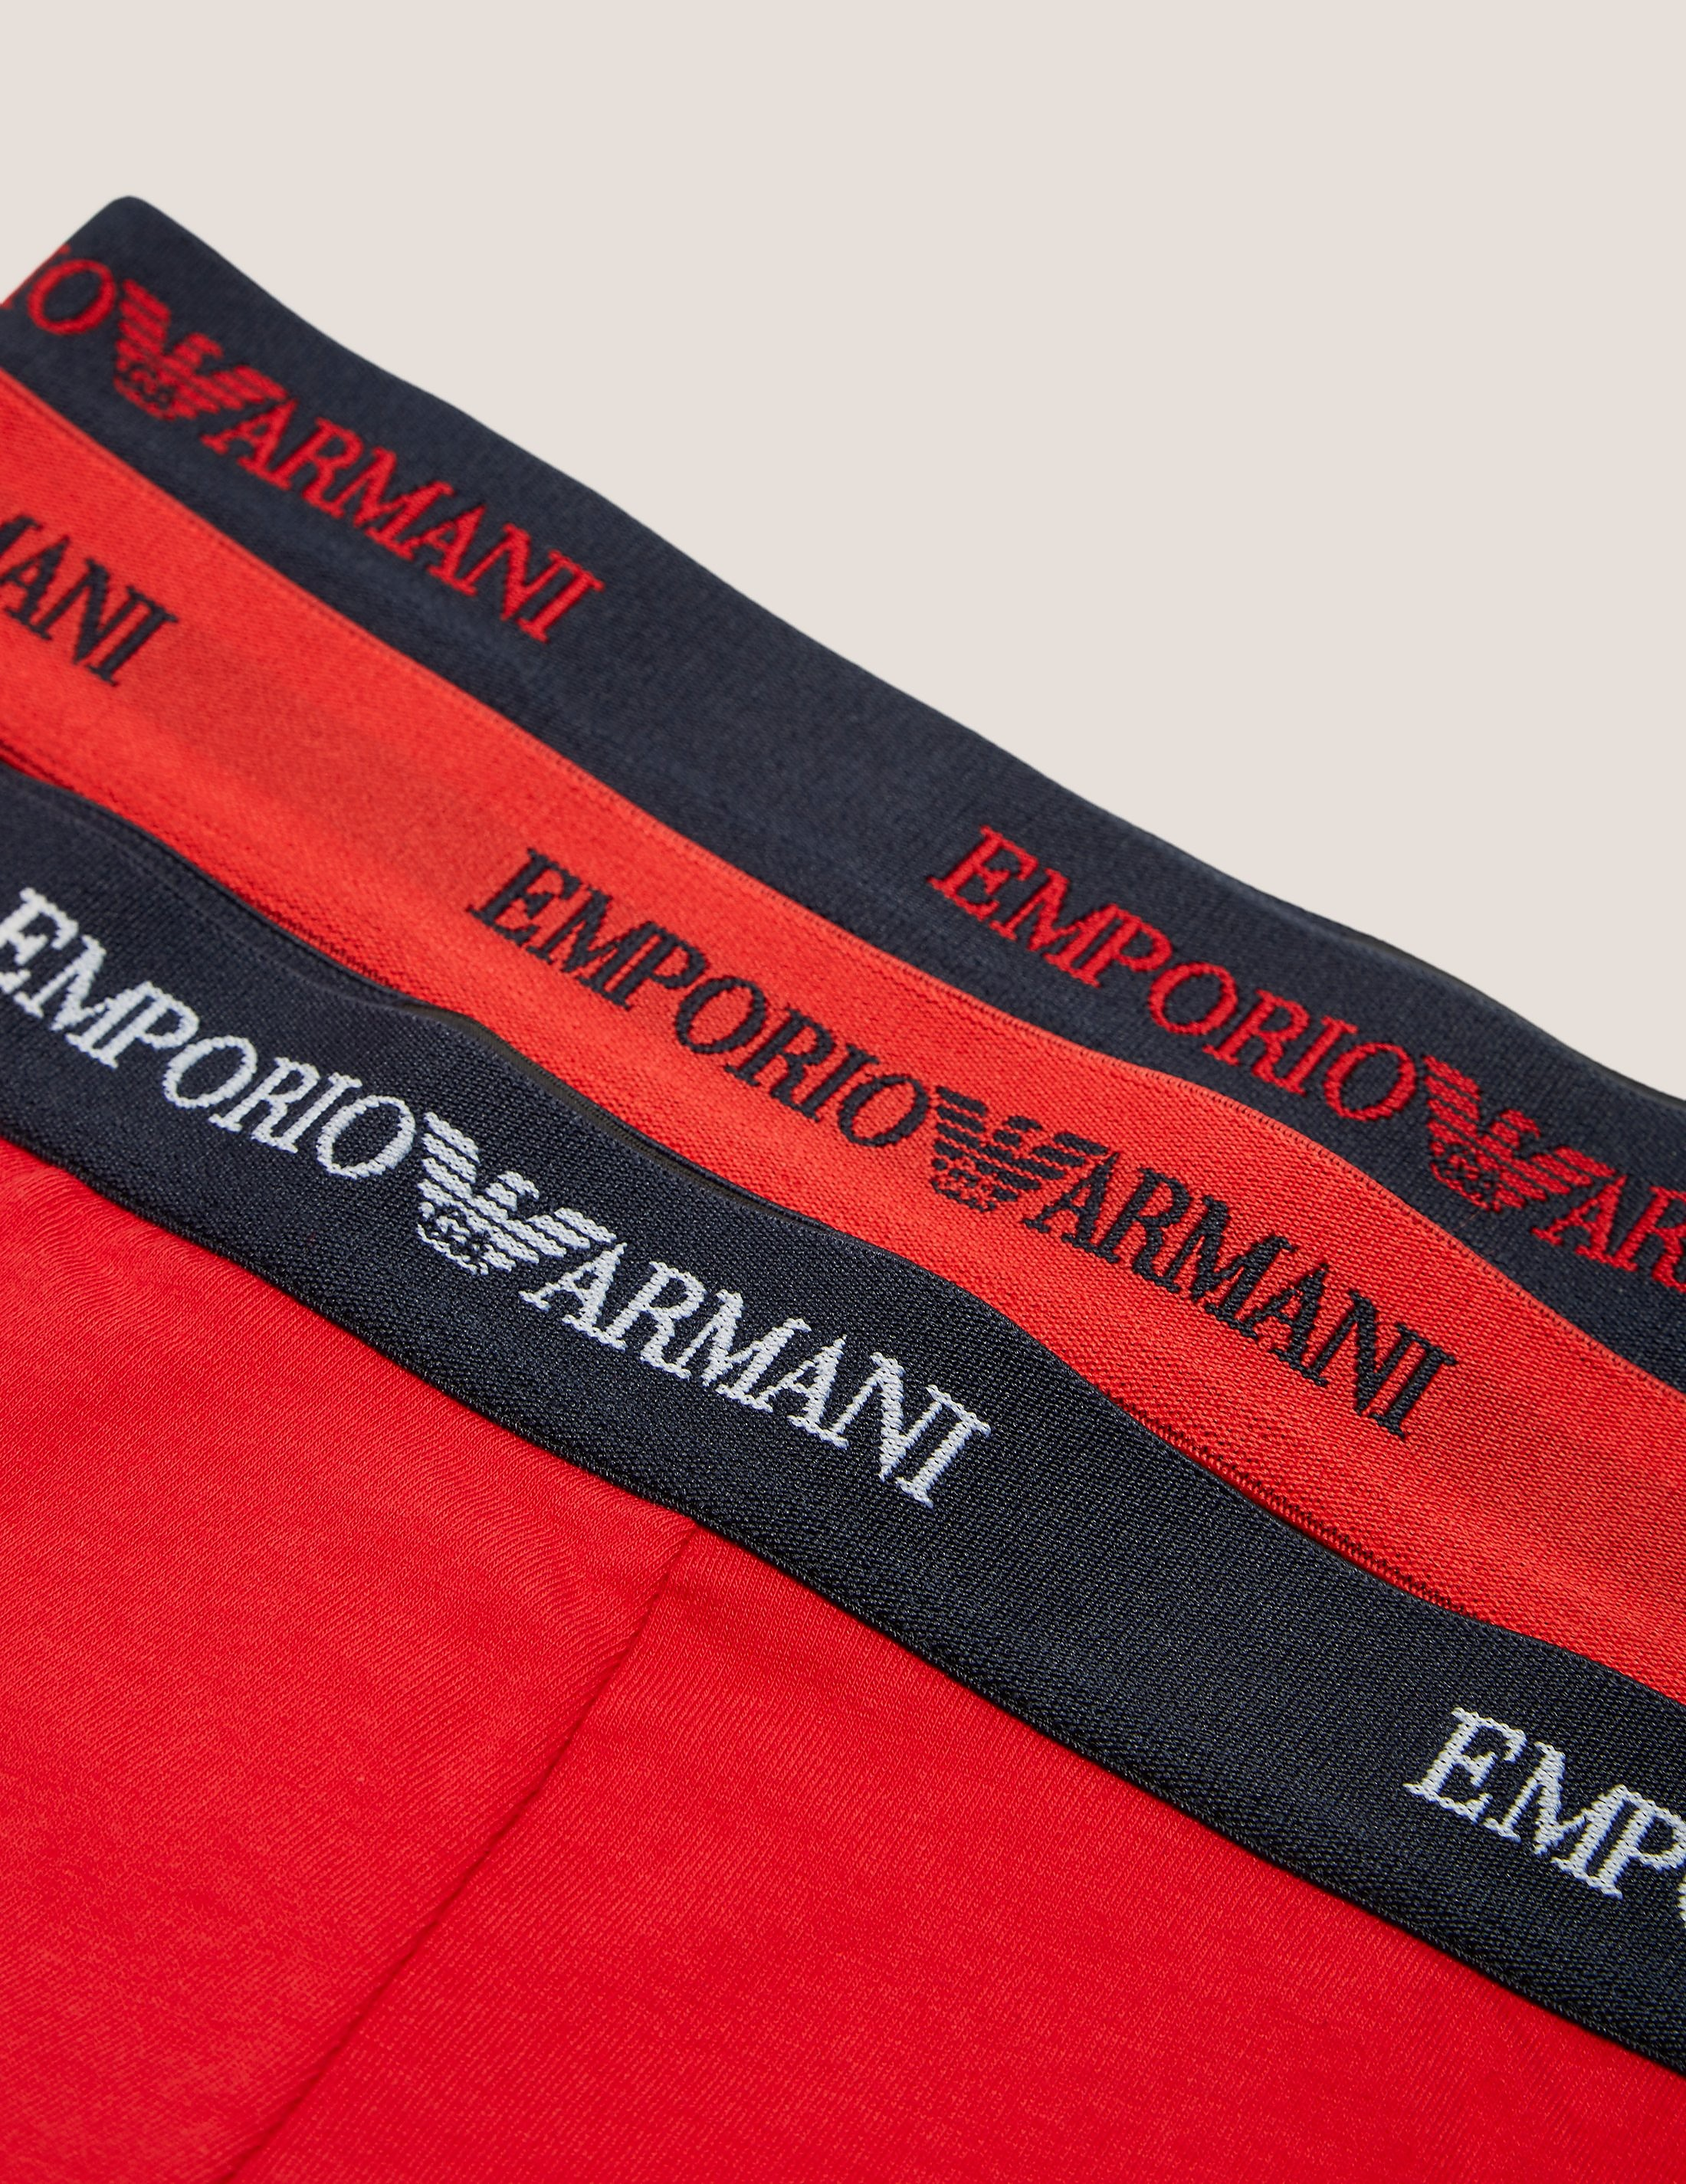 Emporio Armani Three Pack Trunk